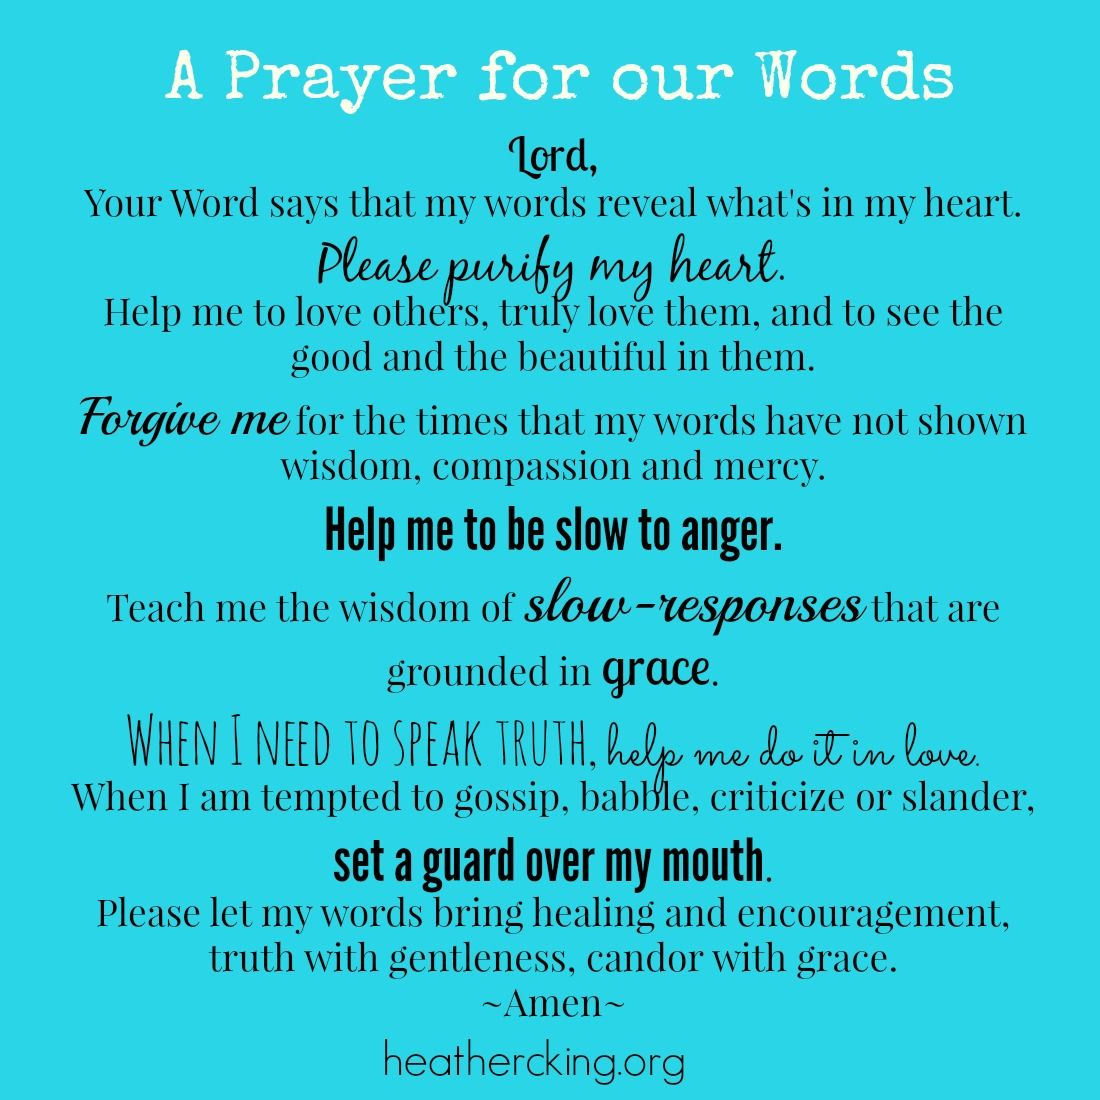 20 Bible Verses And A Prayer About Words And The Power Of